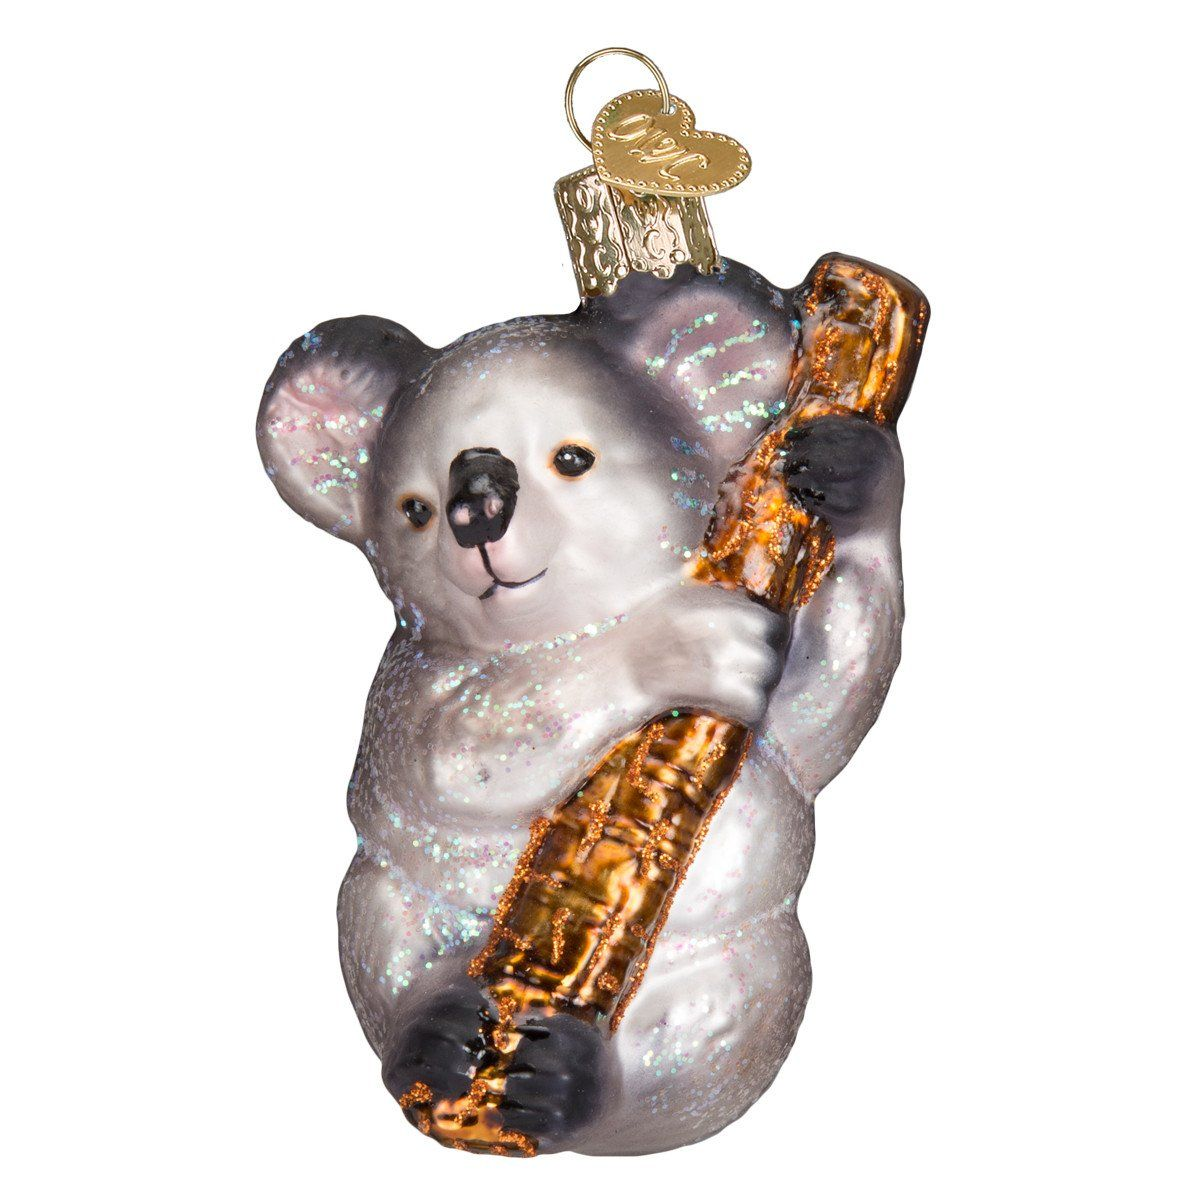 Koala Ornament Old world christmas ornaments, Old world